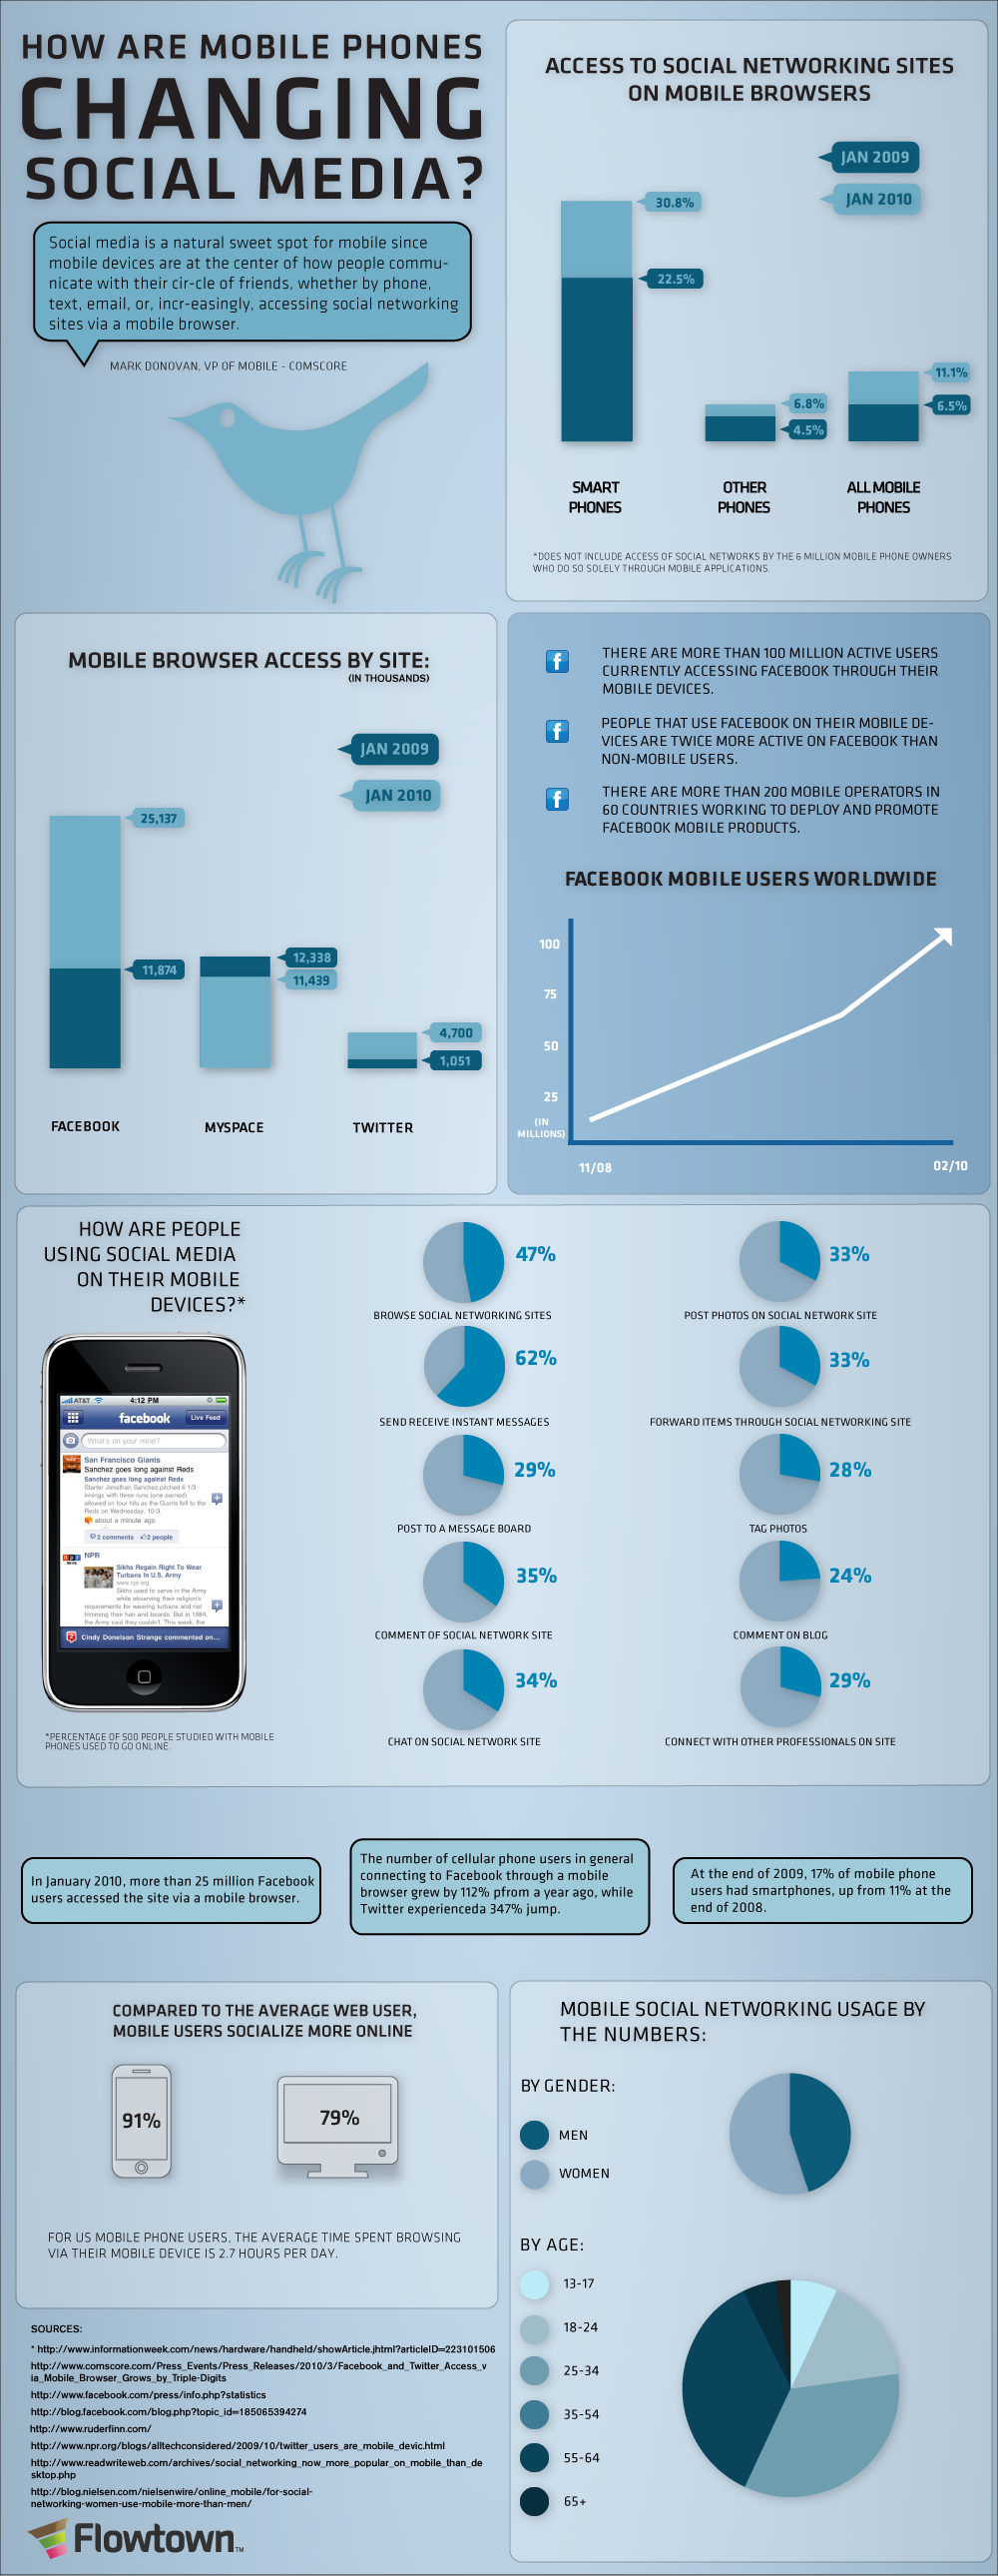 How are Mobile Phones Changing Social Media?